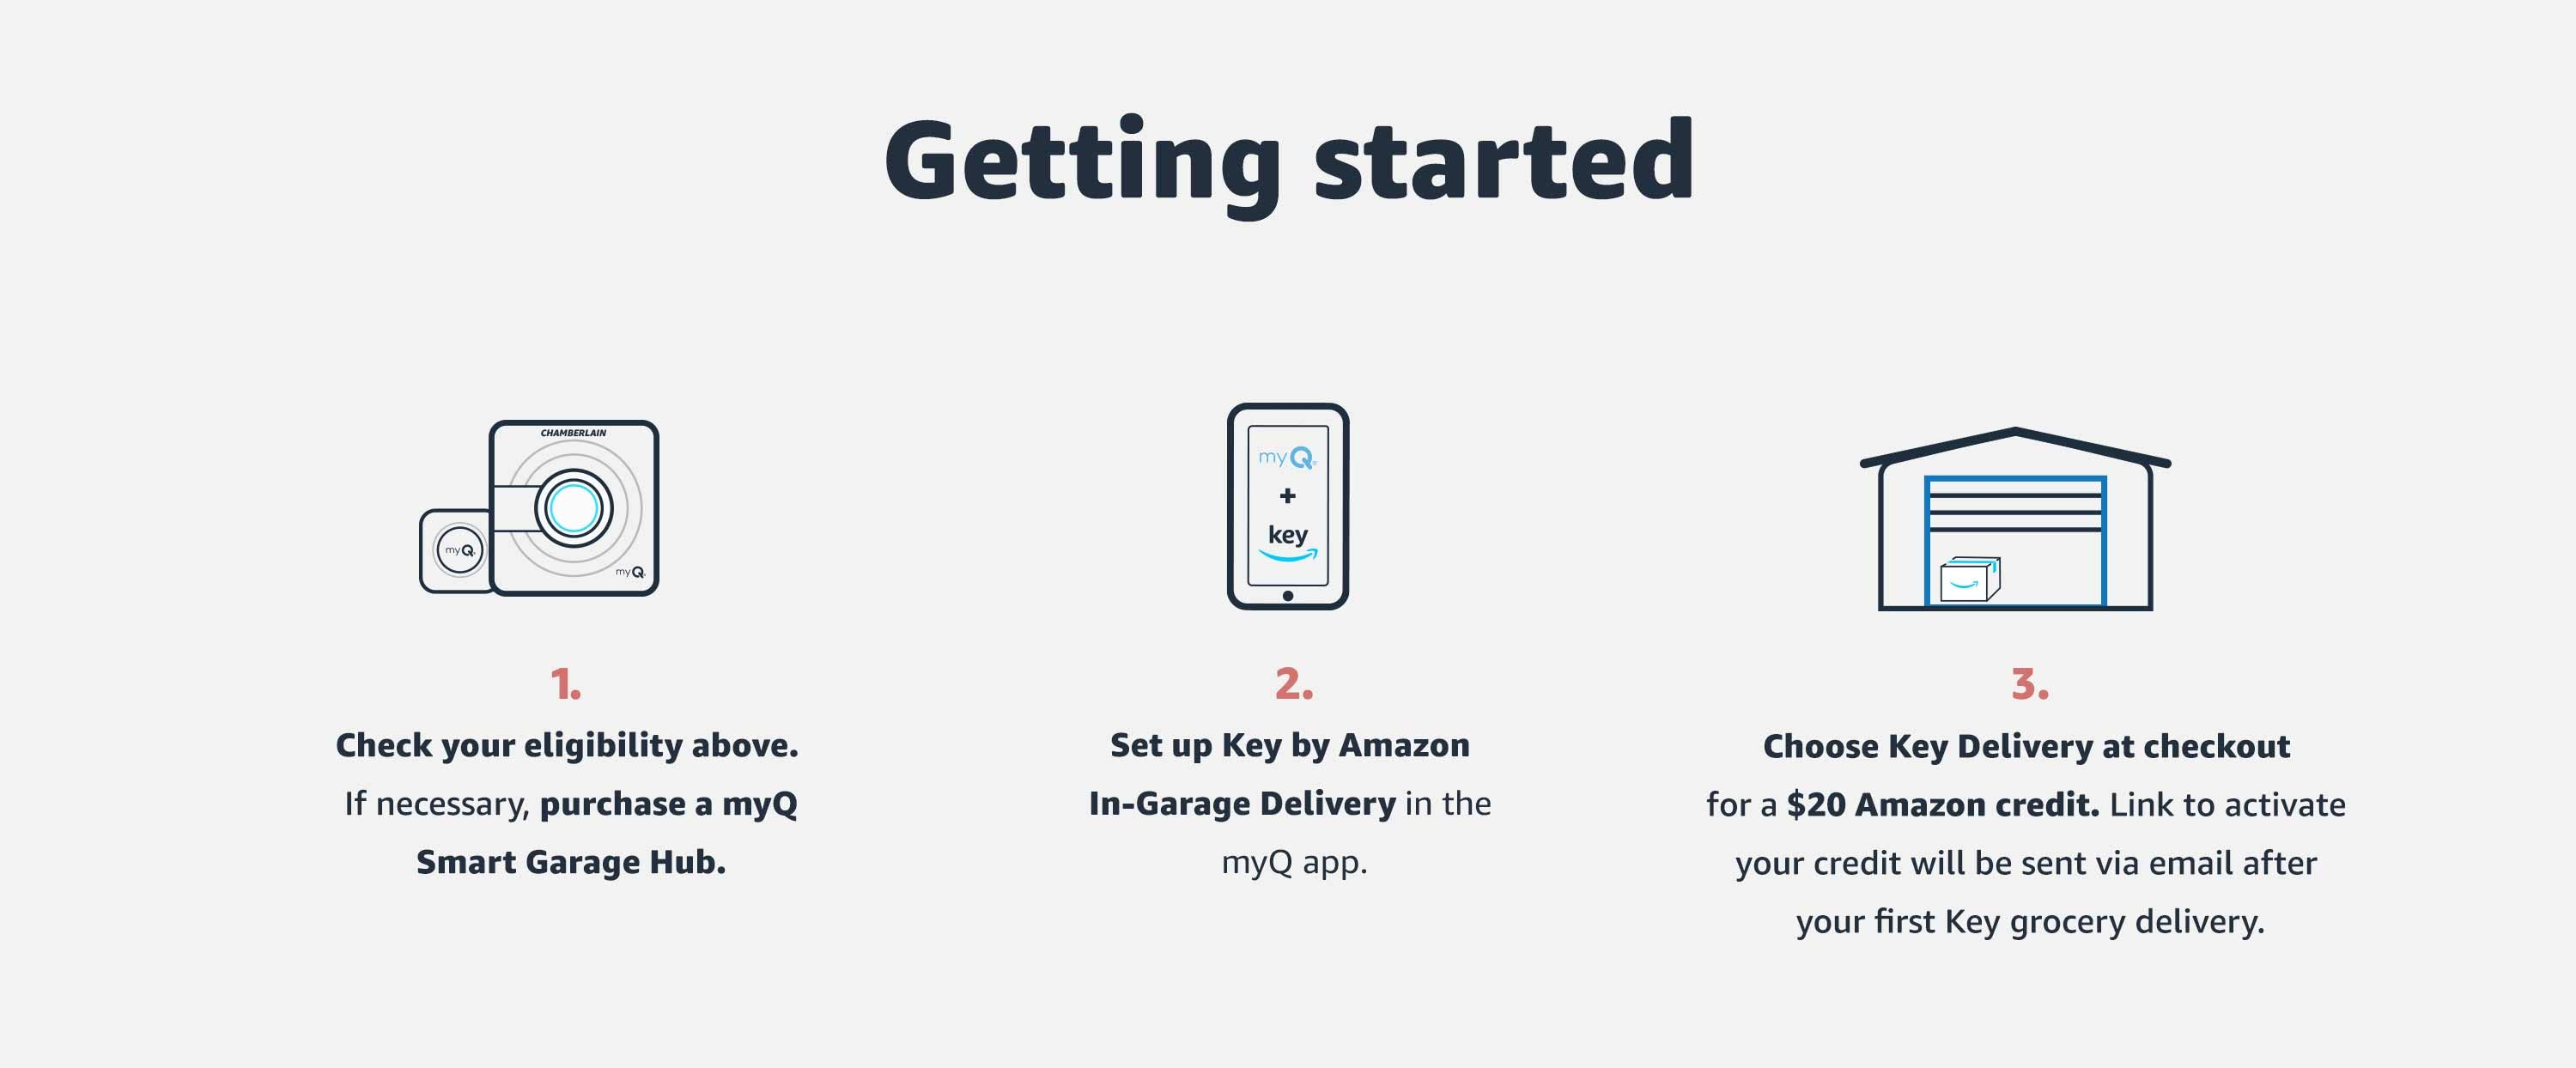 Getting Started. 1. Check eligibility. 2. Set up Key by Amazon In-Garage Delivery. 3. Choose Key Delivery at checkout